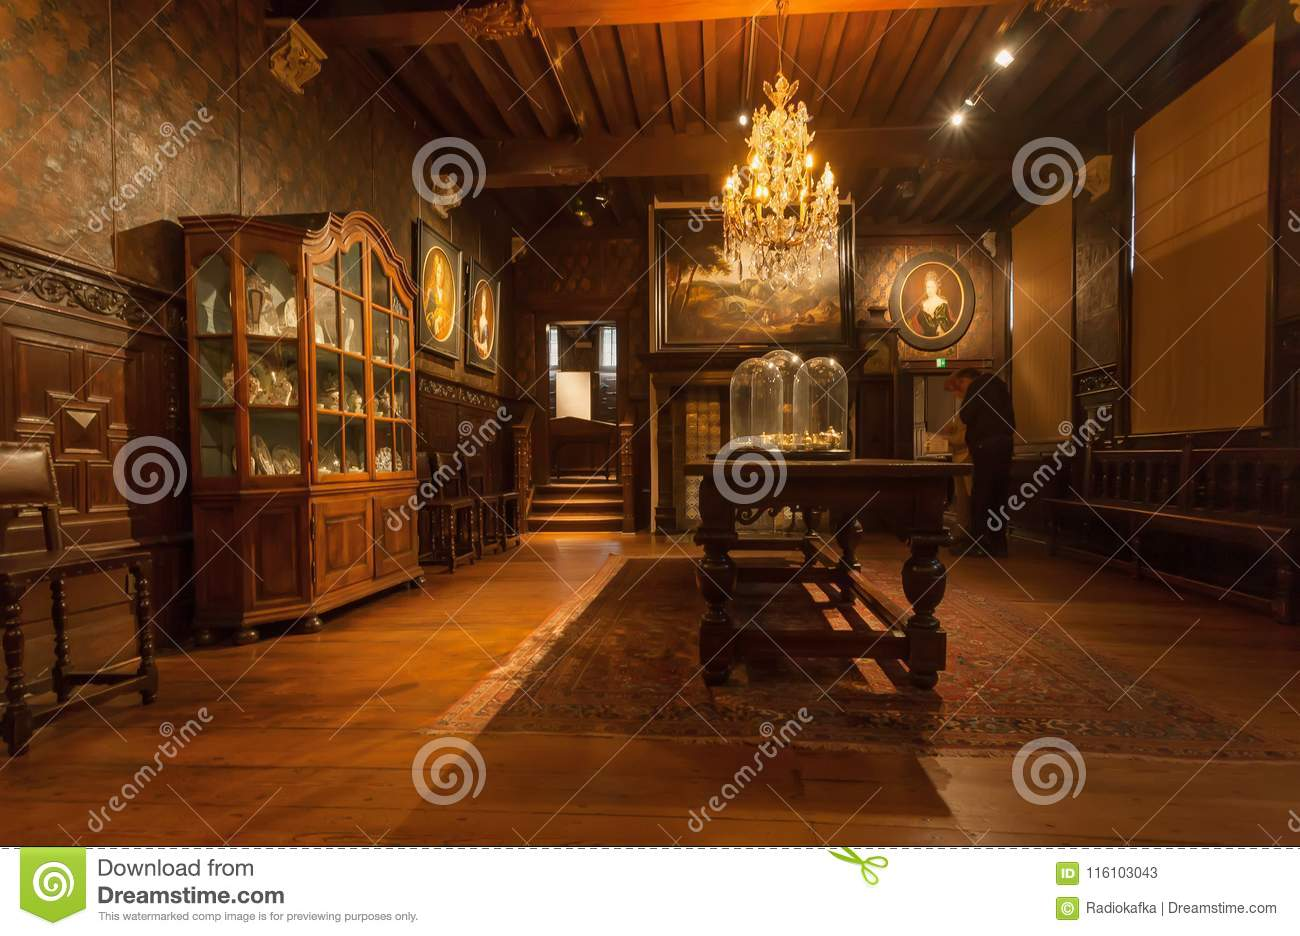 Antwerp belgium mar 30 living room with vintage chandelier and antique furniture in printing museum of plantin moretus unesco heritage site on march 30